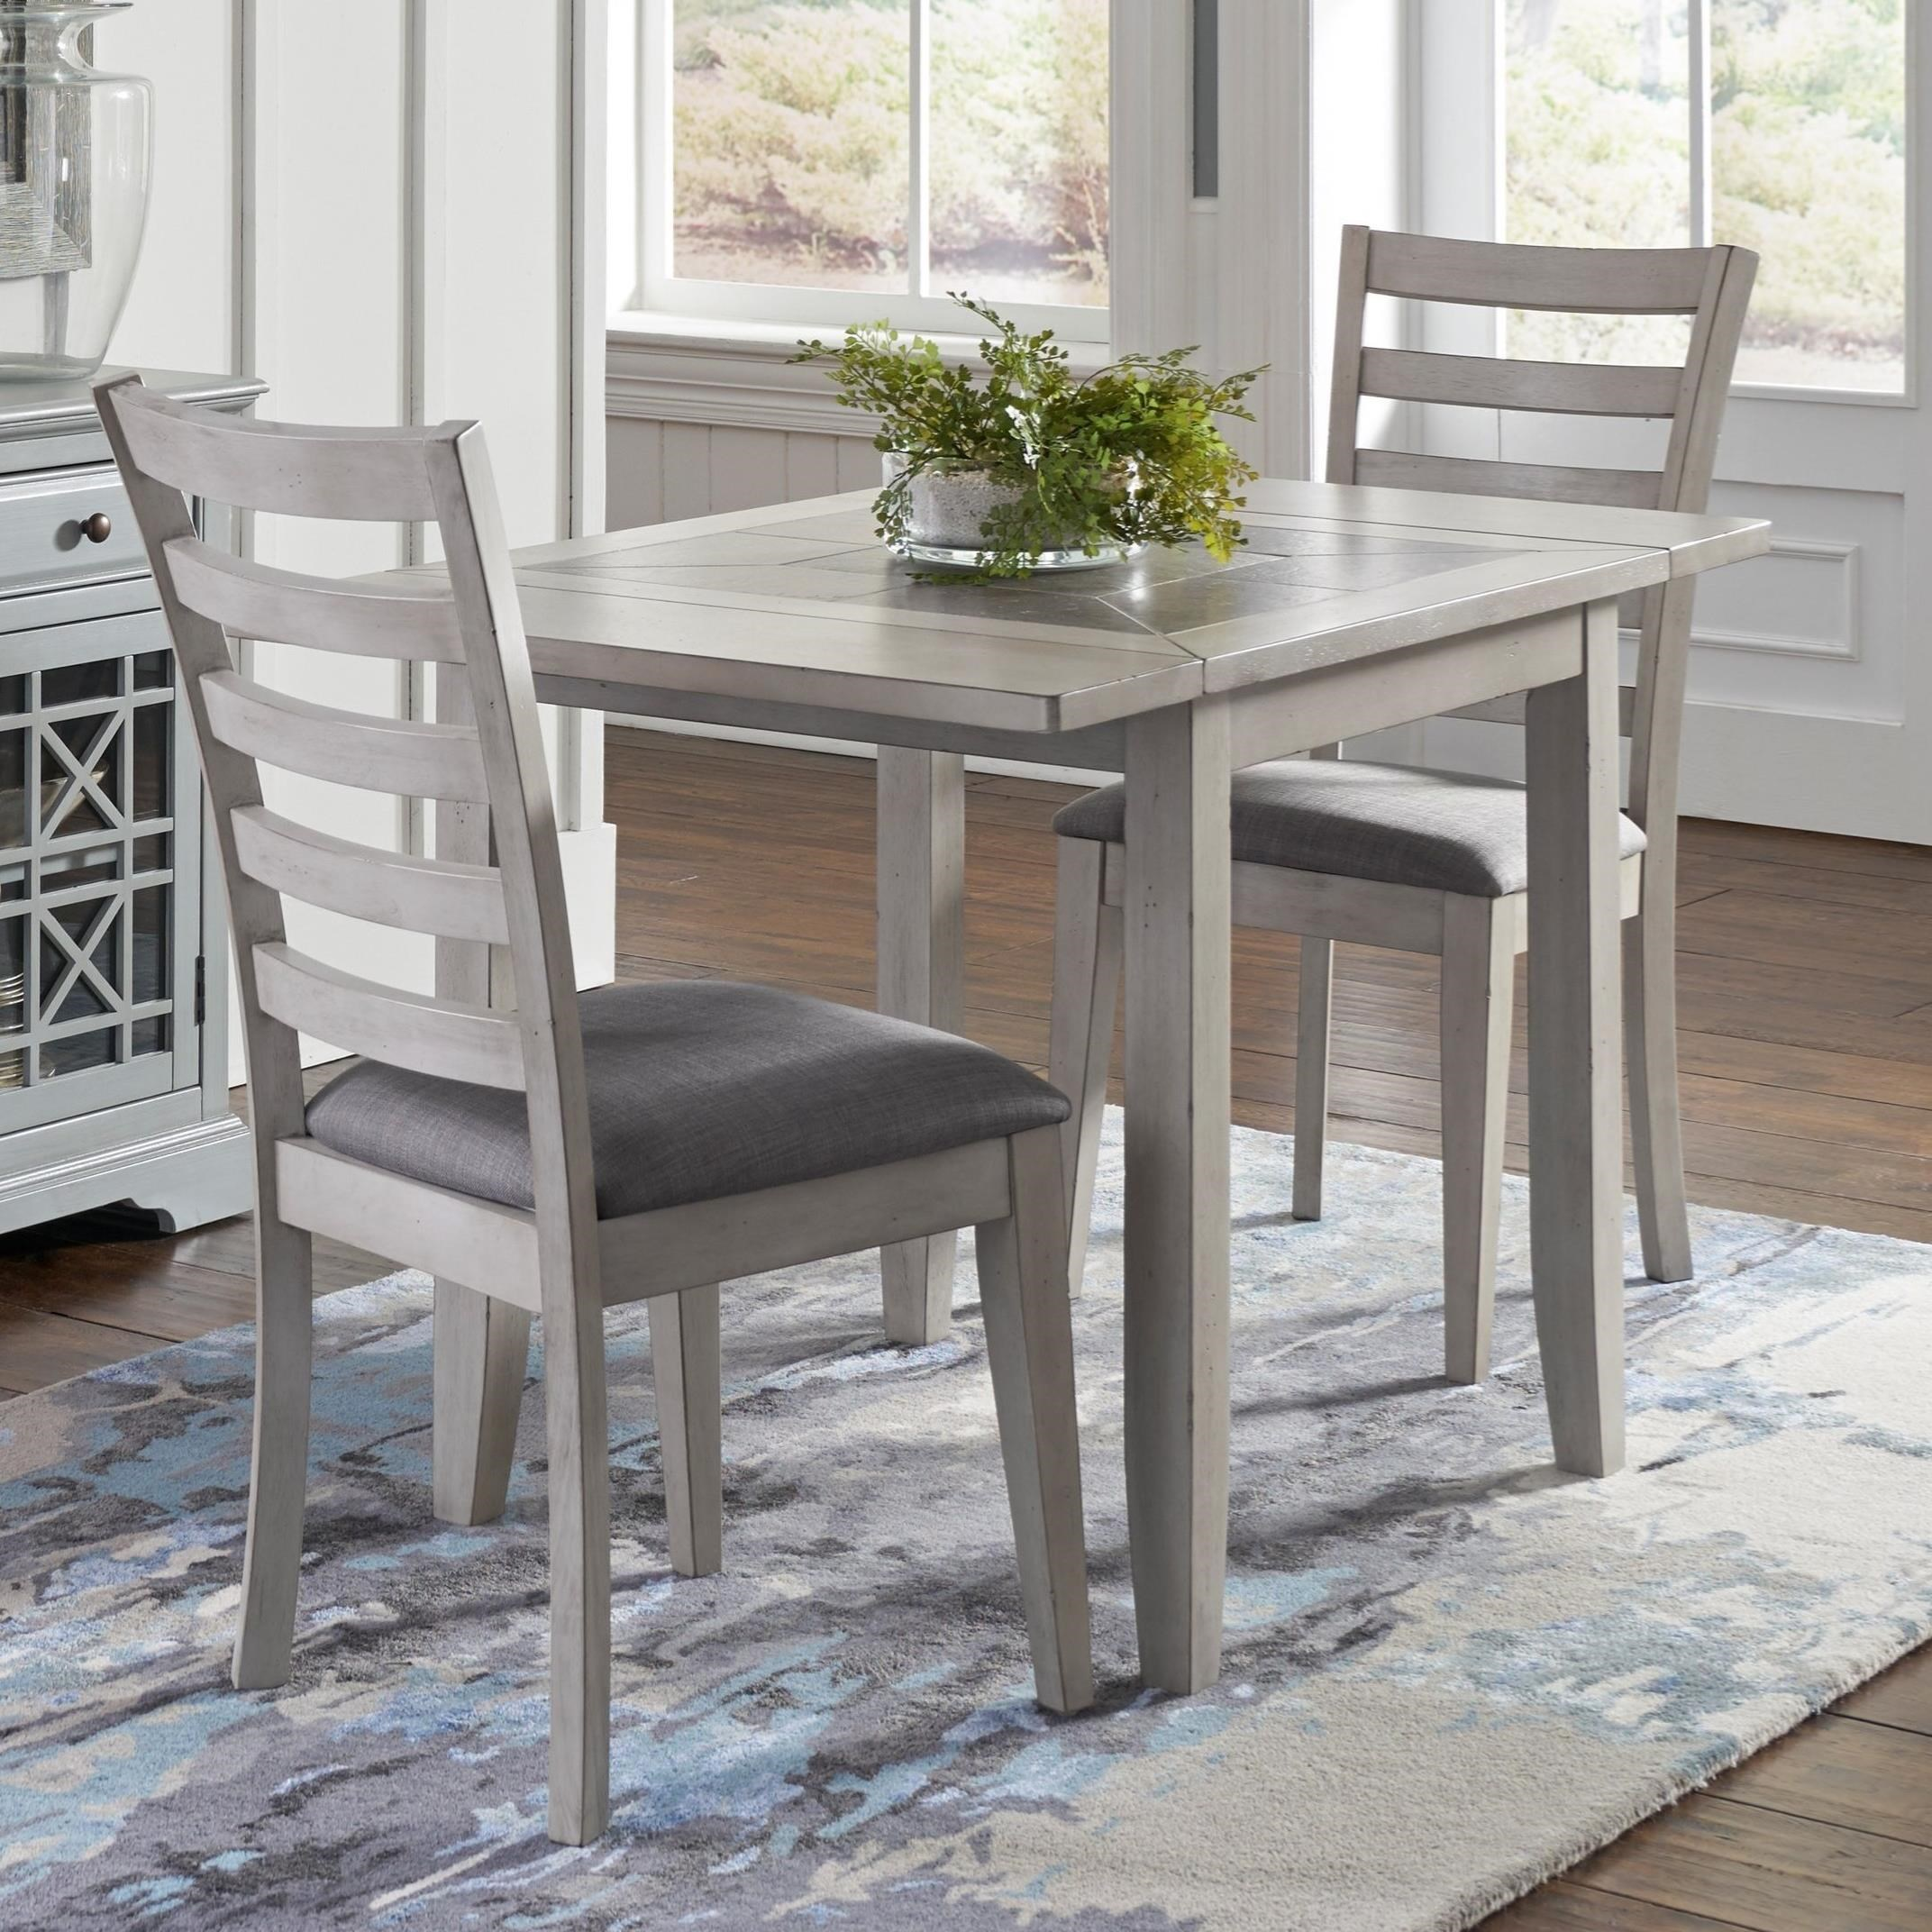 Sarasota Springs Drop Leaf Table and 2 Chair Set by Jofran at SuperStore